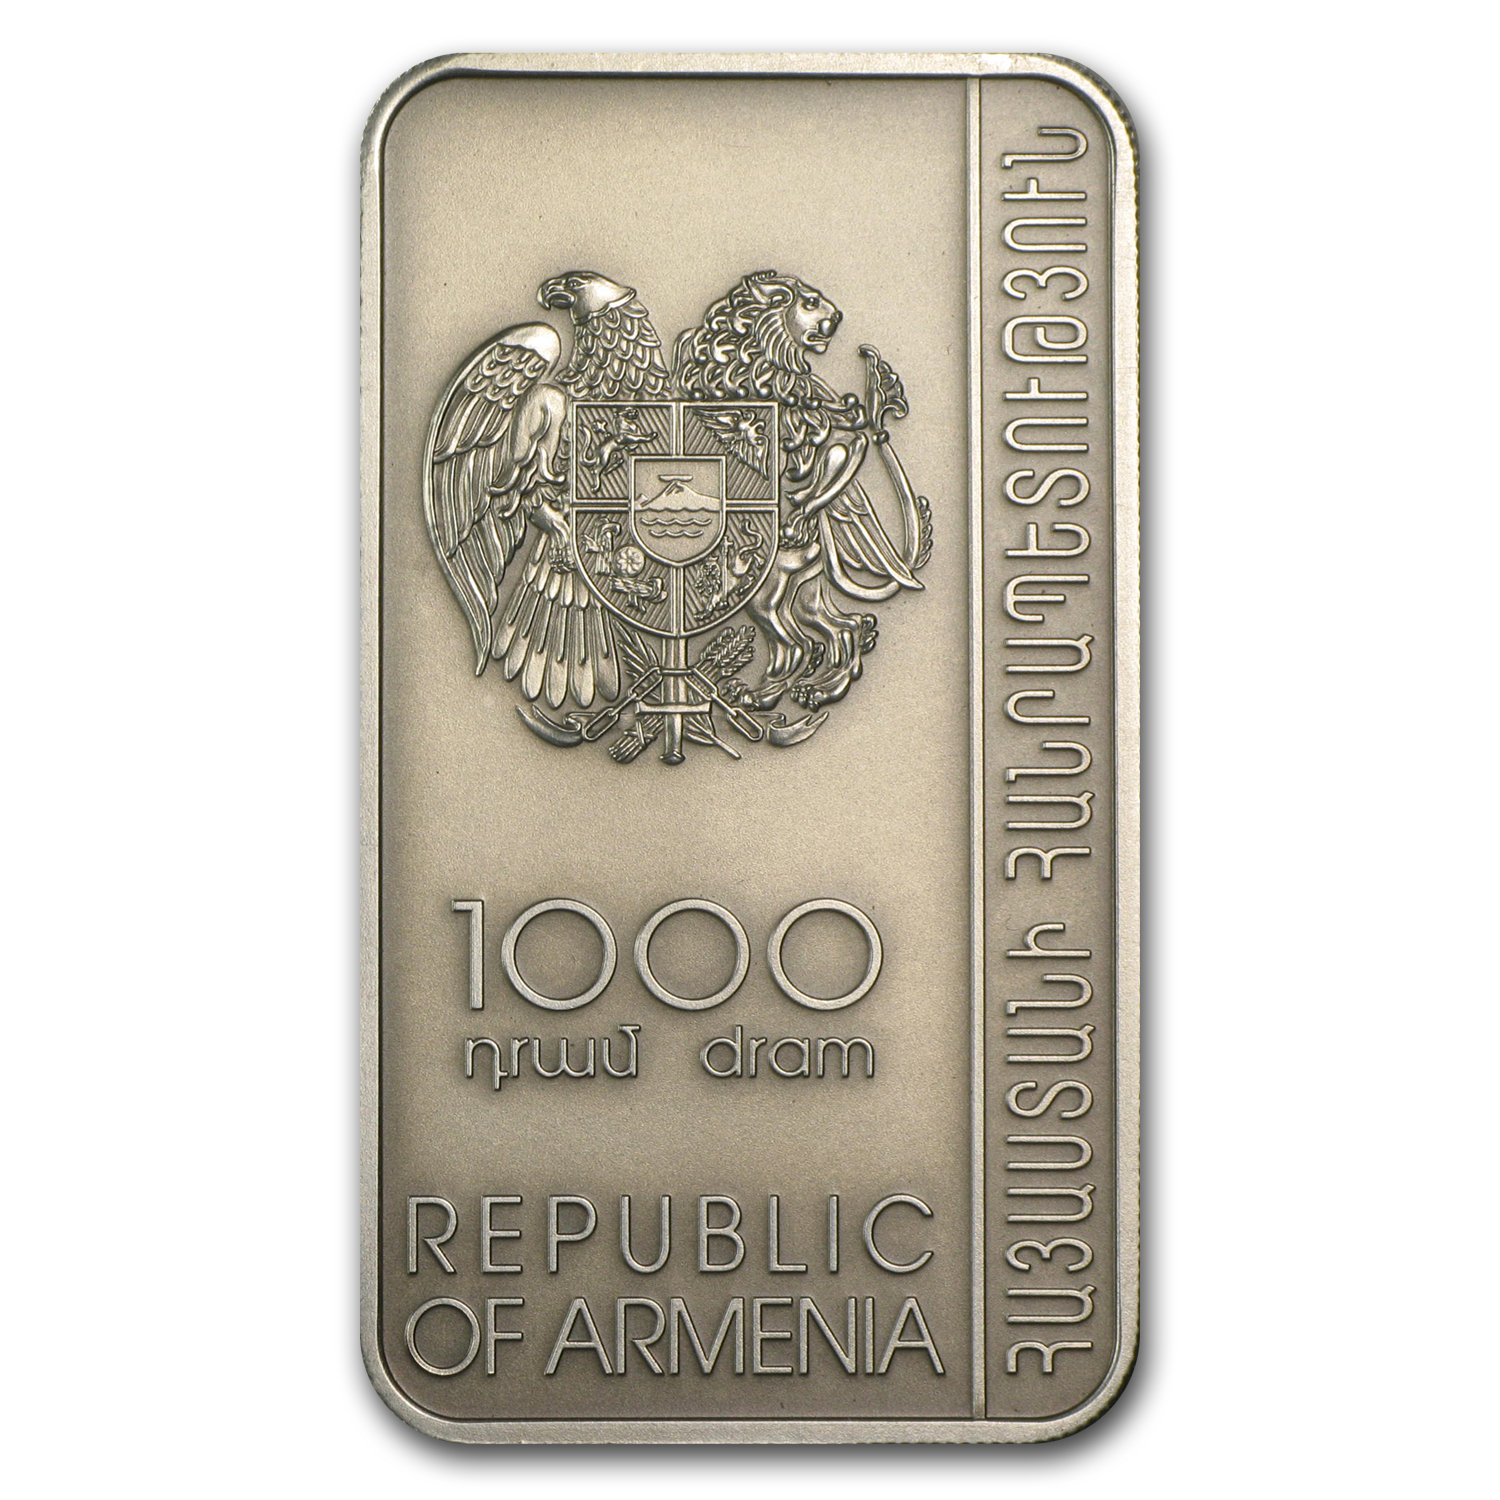 2011 Armenia 1000 Dram Cross-Stones of Armenia The Goshavank